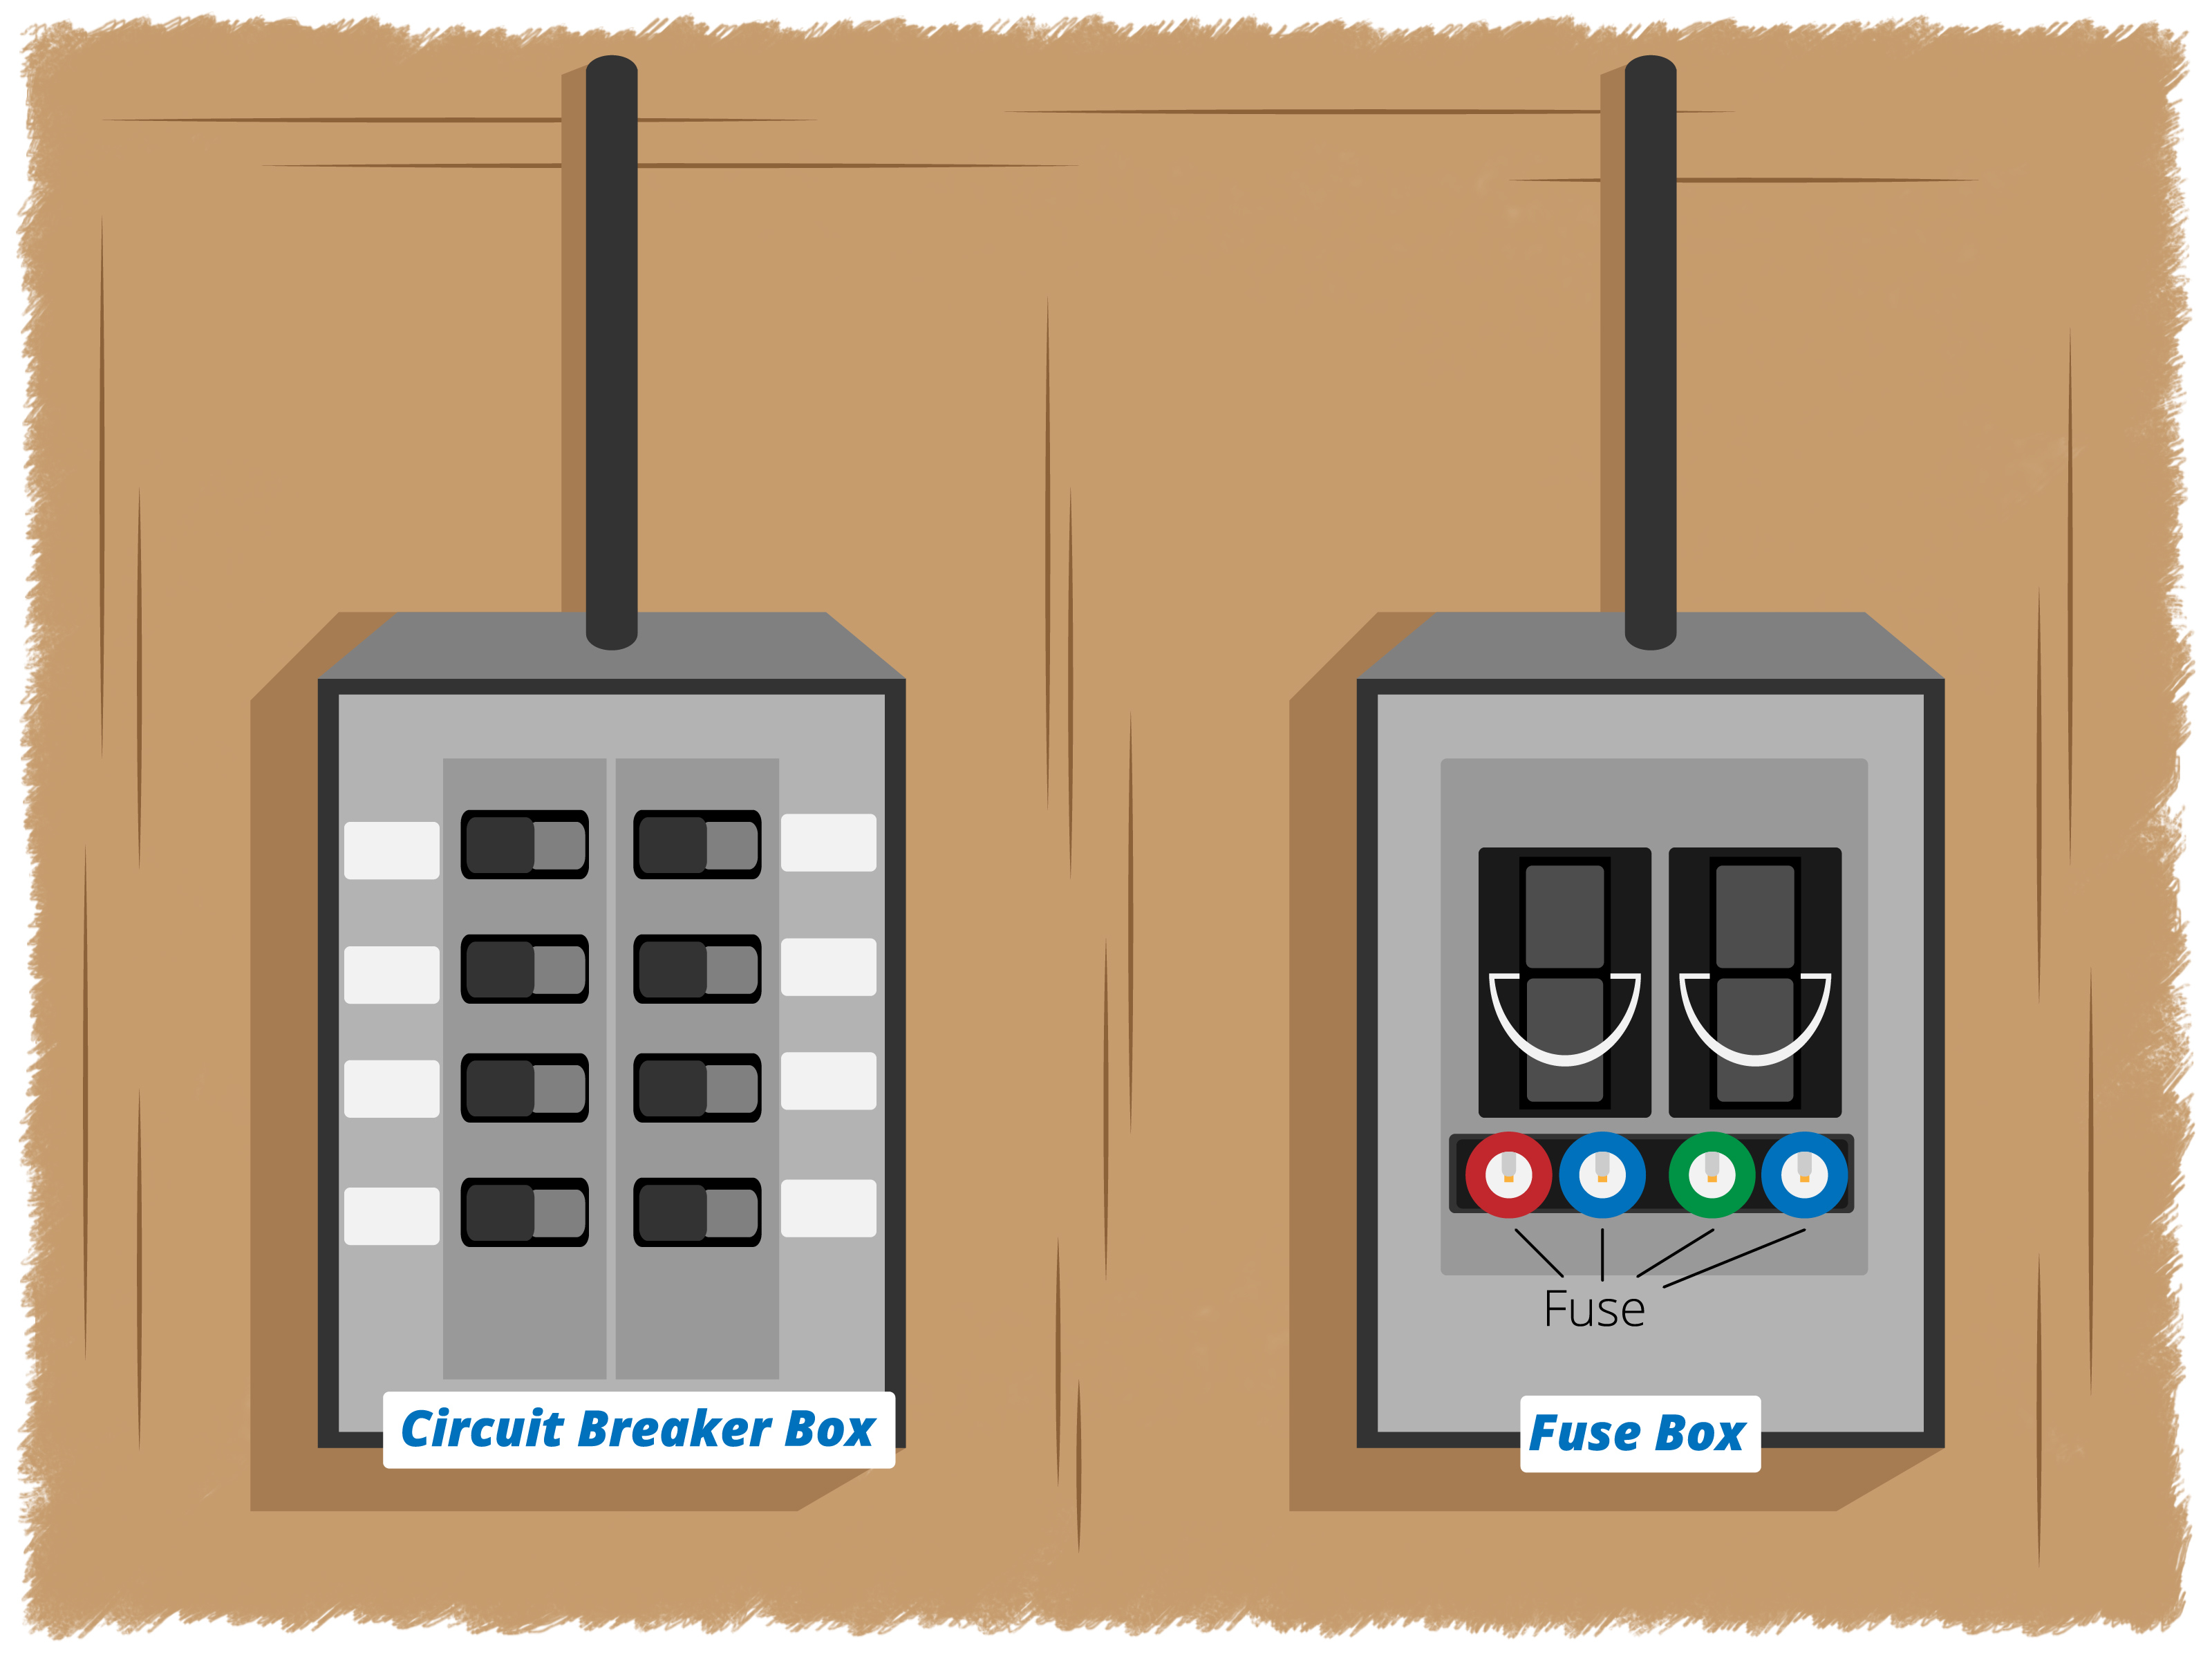 fuse box vs breaker box